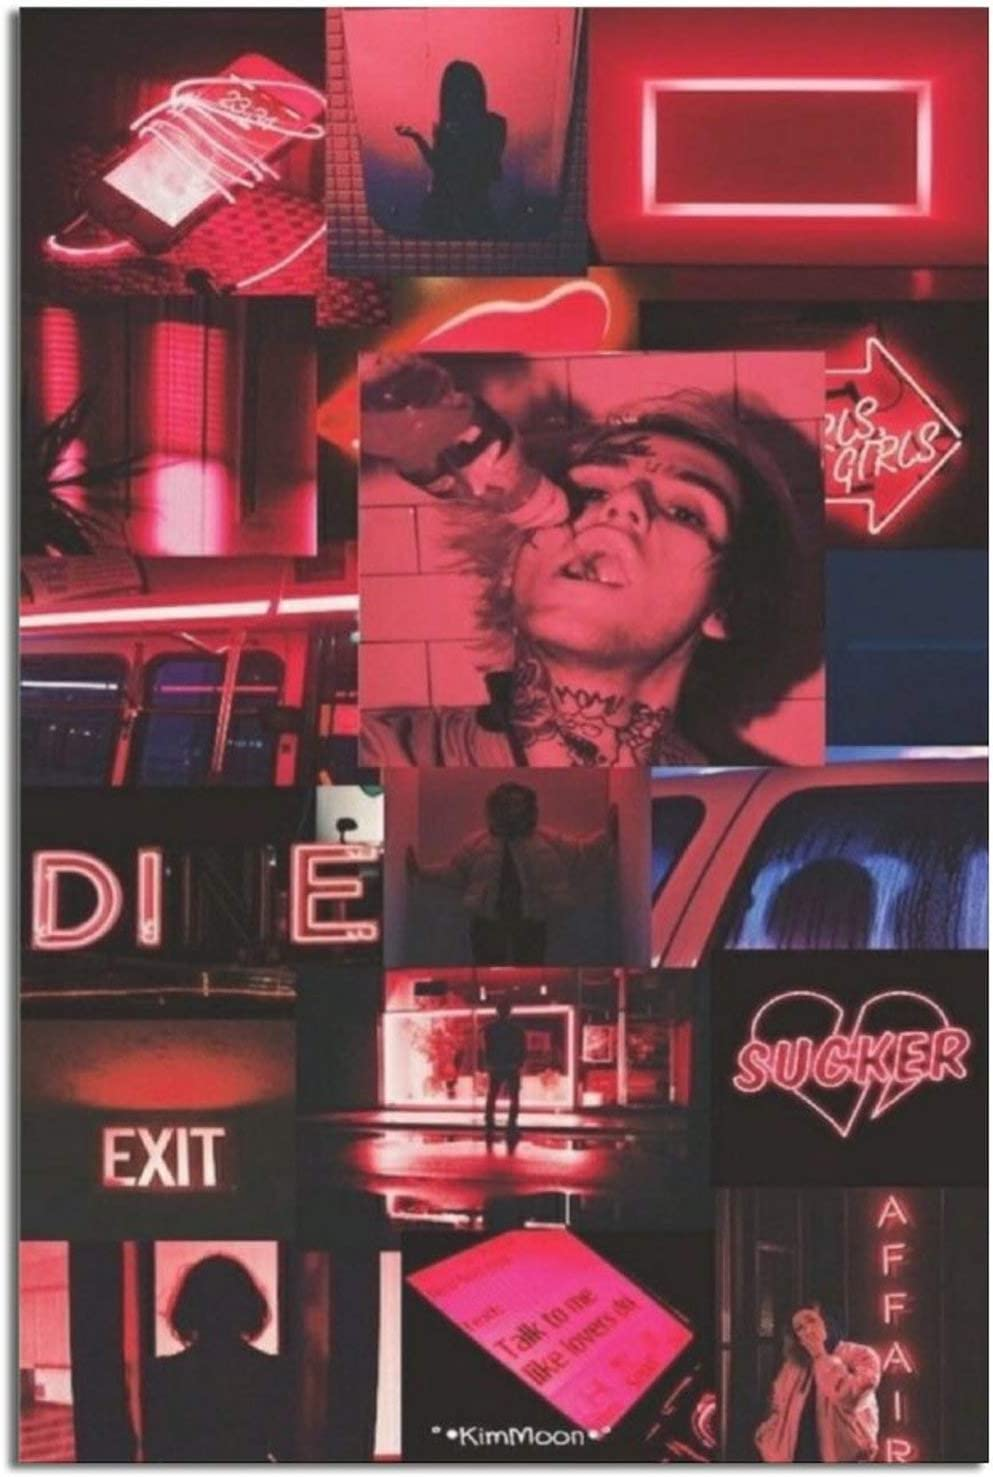 ZeroKaata Lil PEEP NIGHTWAVE Club Life Collage Poster Print Canvas Wall Art Home Decor Painting for Bedroom Living Room Unframe-style1 8×12inchs(20×30cm)